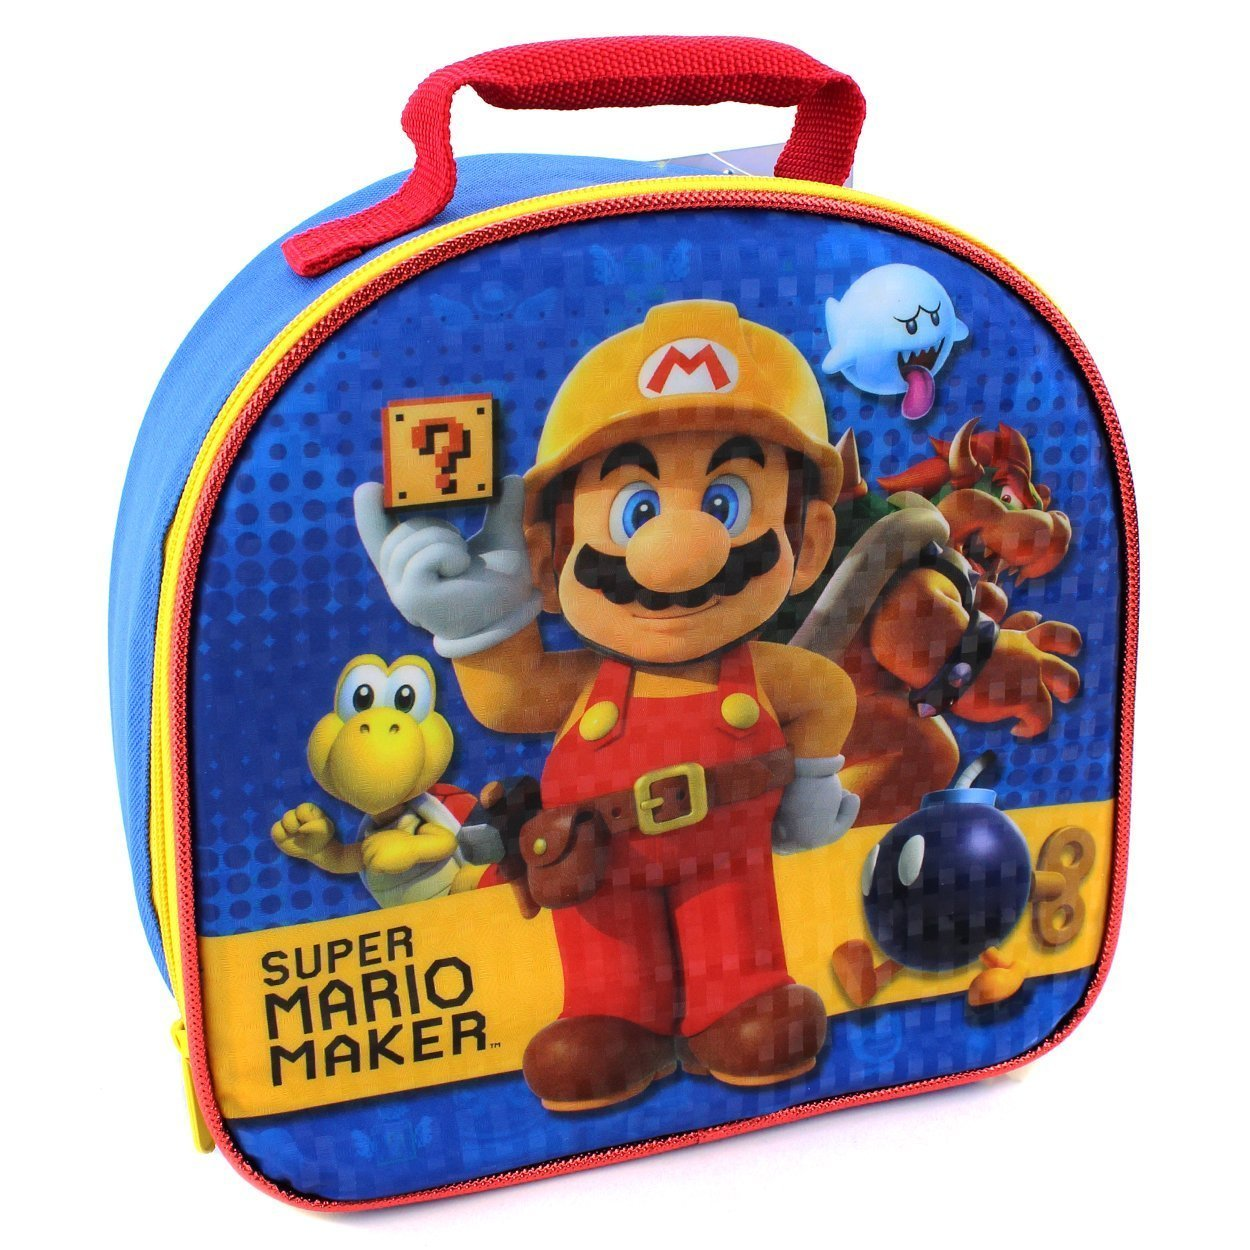 47537445a8 Get Quotations · Super Mario Soft Lunch Box (Super Mario Maker)